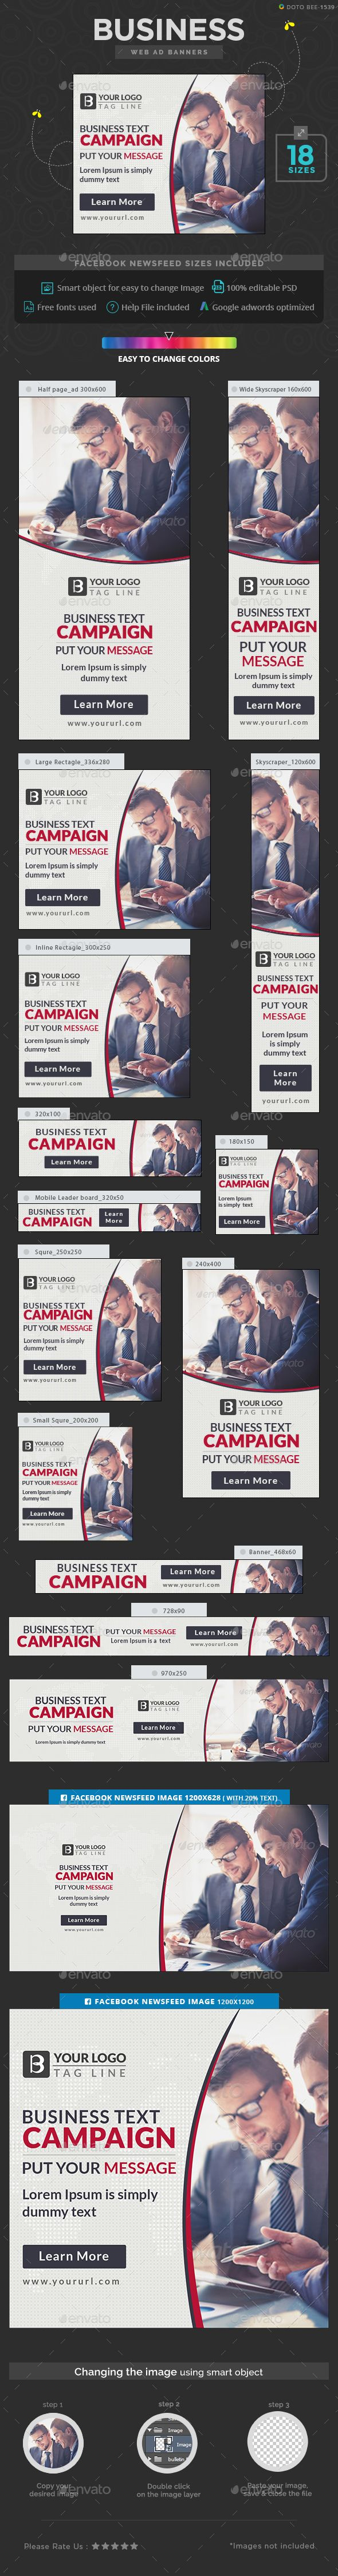 Business Web Banners Template PSD. Download here: https://graphicriver.net/item/business-banners/17002236?ref=ksioks